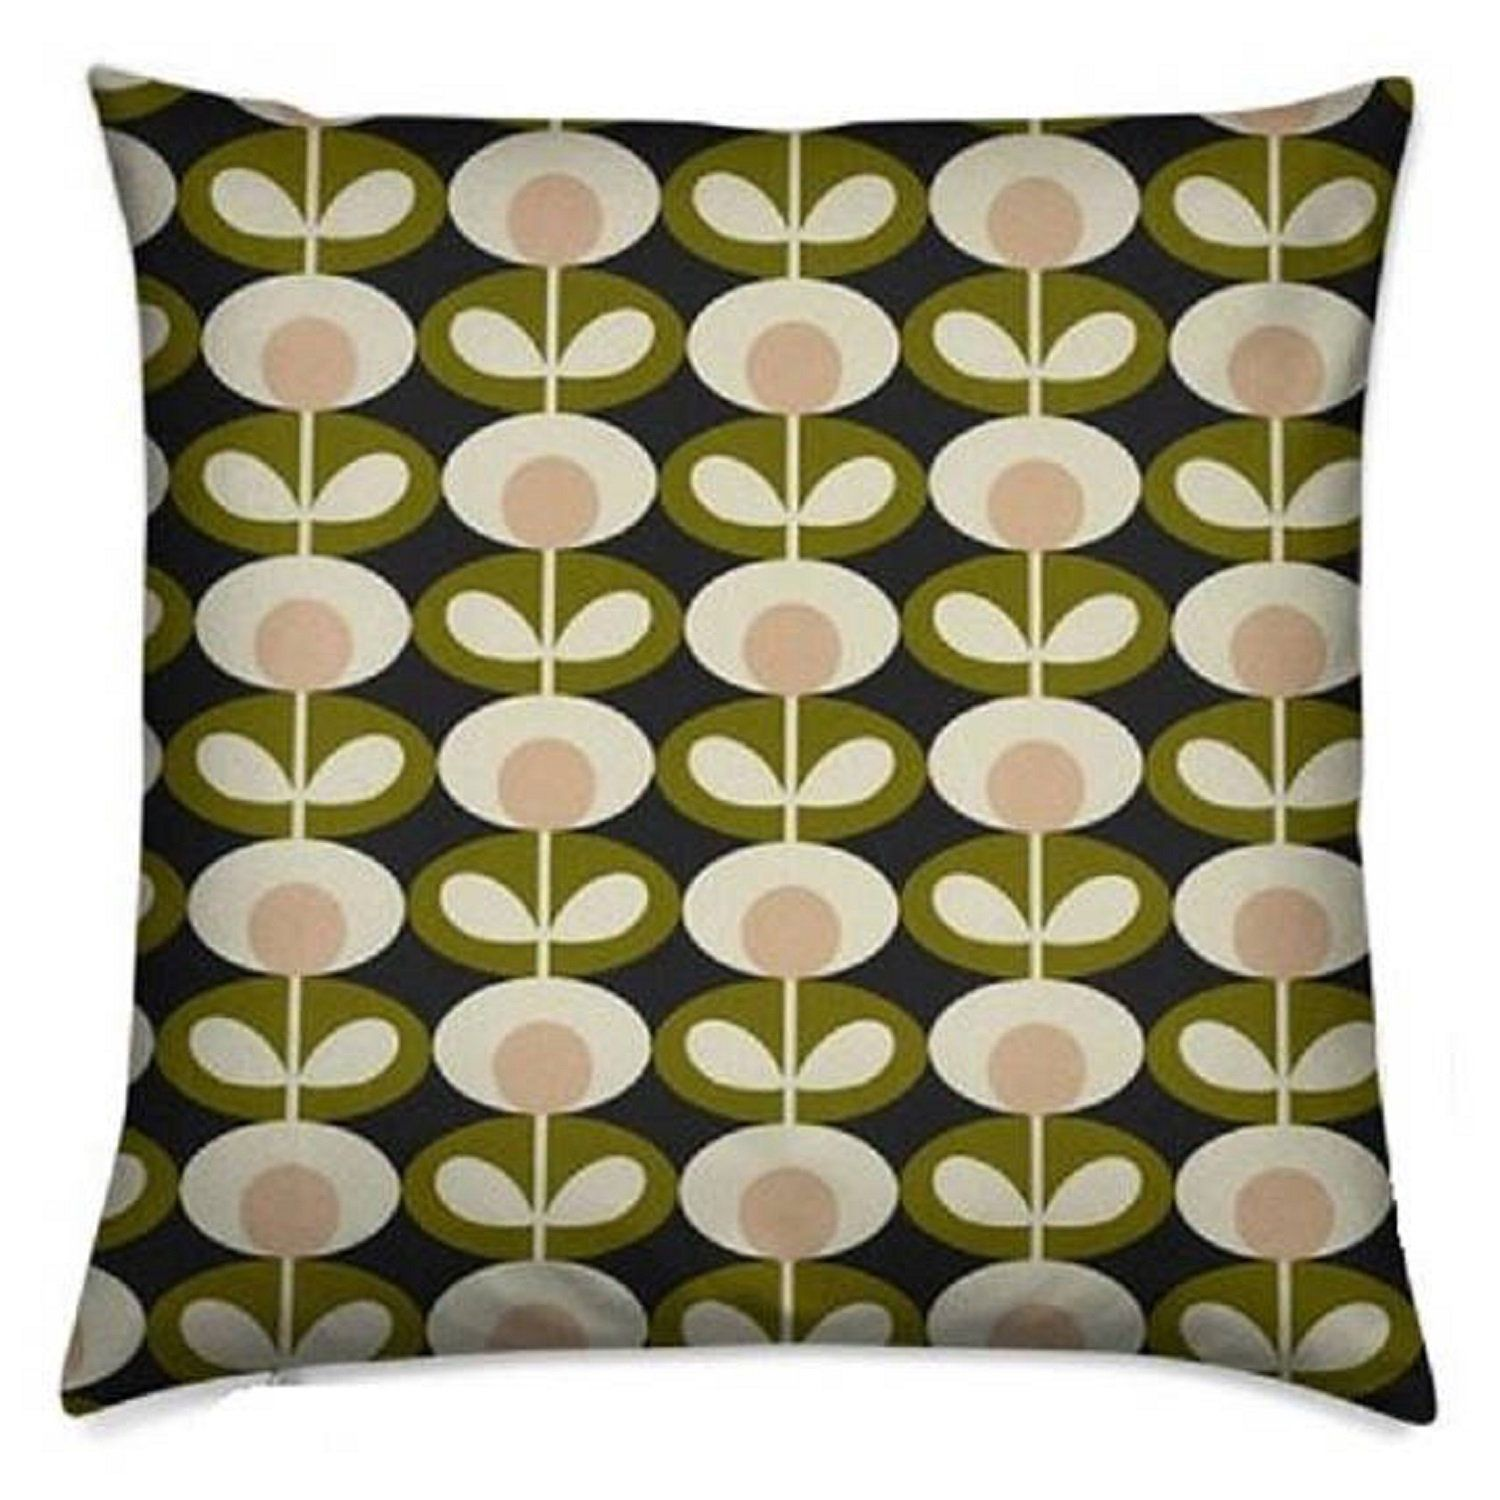 Various Floral Happy 16th Birthday Cushion Covers 40cm x 40cm w// Inner